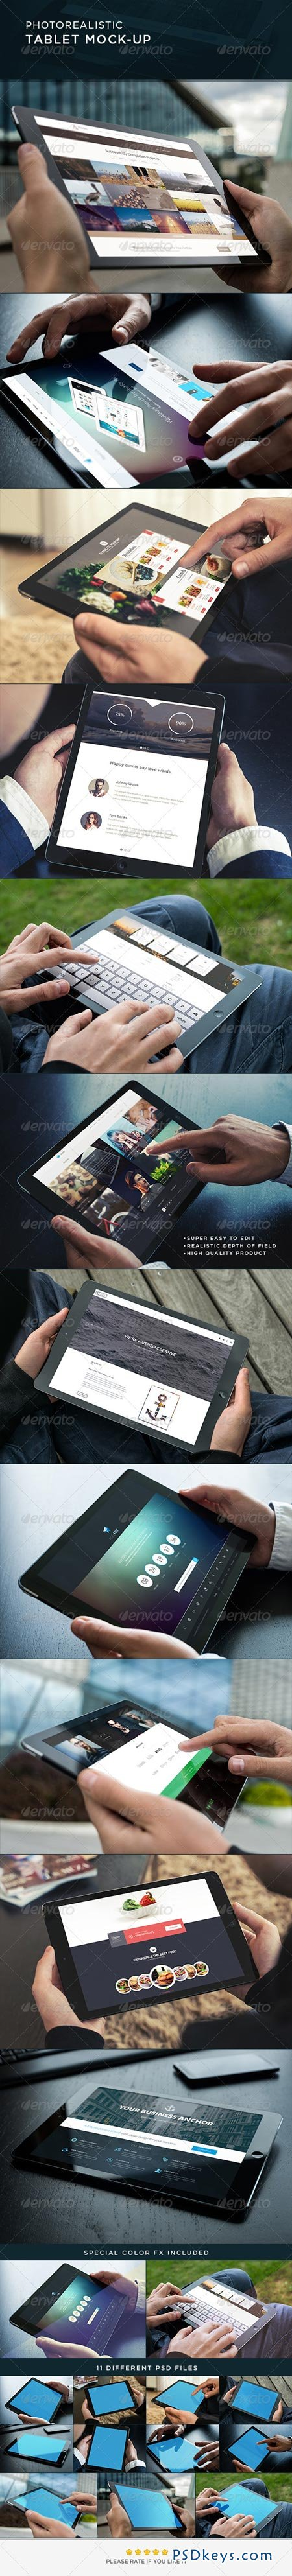 Photorealistic Tablet Mock-Up 8765380